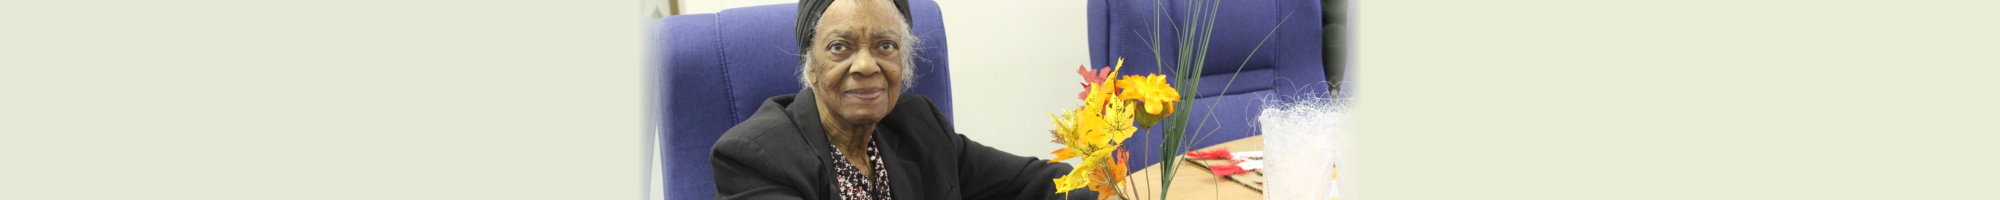 Elderly Woman smiling with flowers on the table